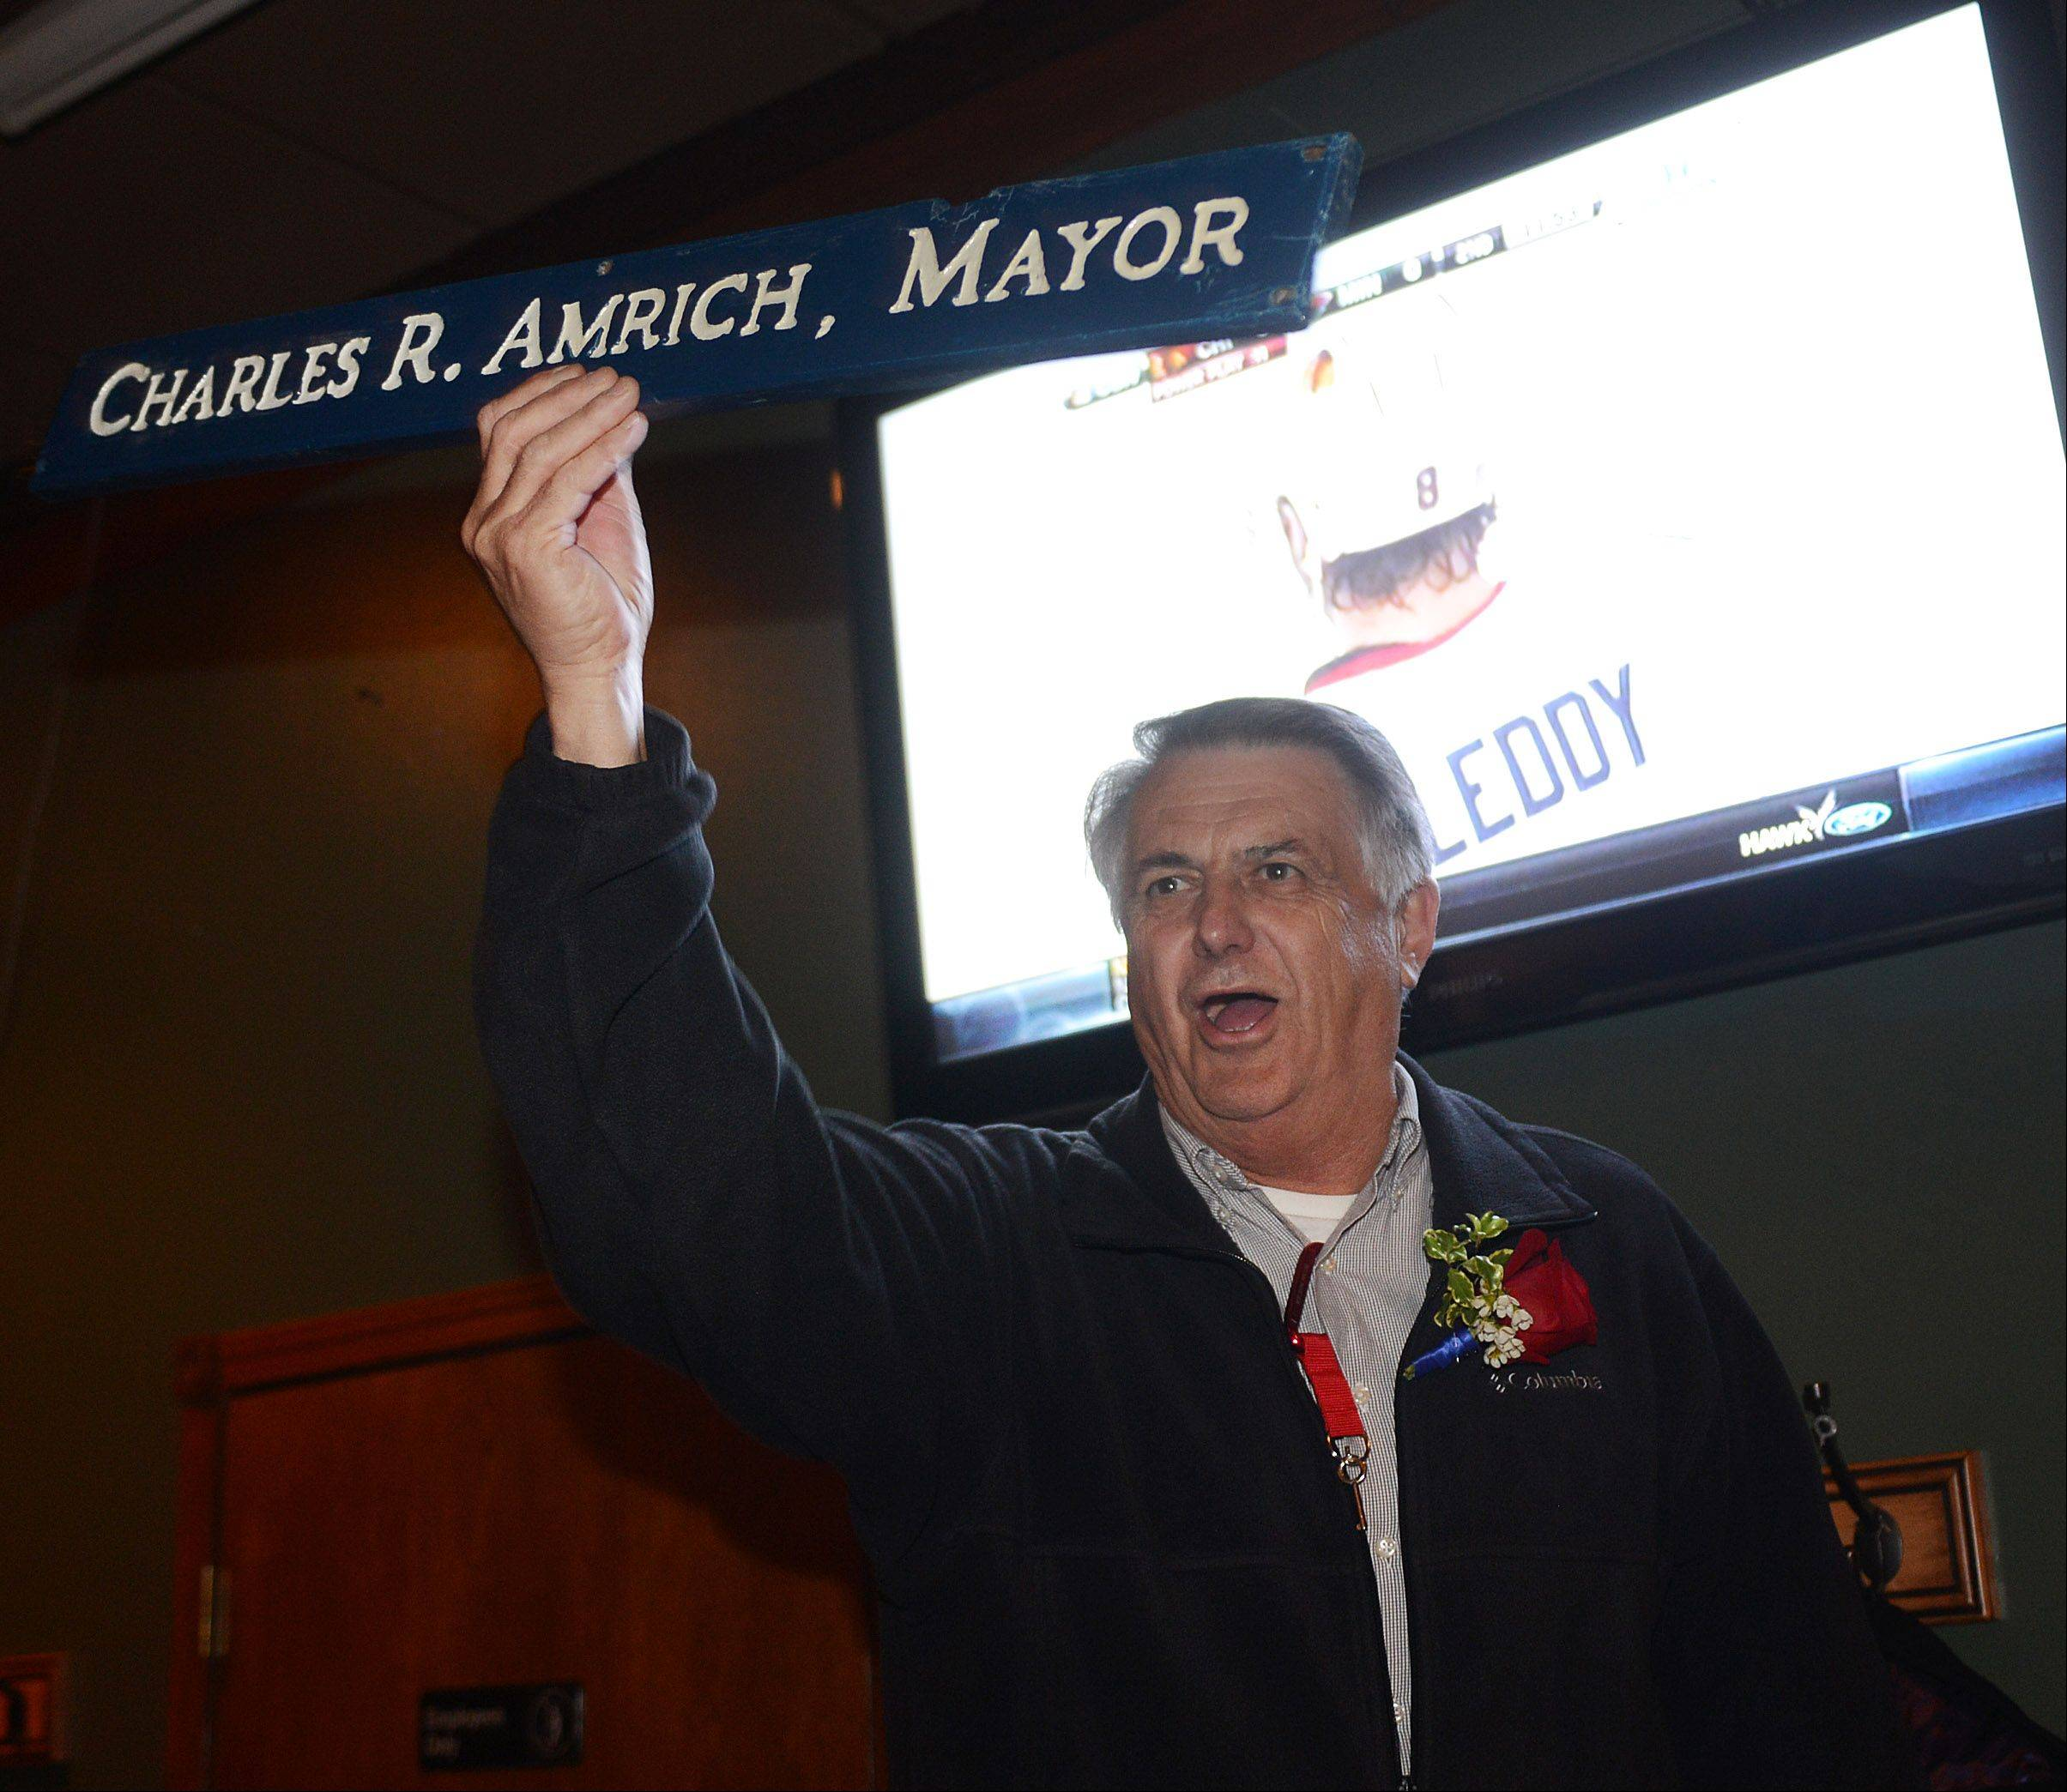 Paul Valade/pvalade@dailyherald.comIsland Lake mayoral candidate Charles Amrich celebrates at his victory party Tuesday night. He holds his 1985 mayor's sign from when he used to hold the office.